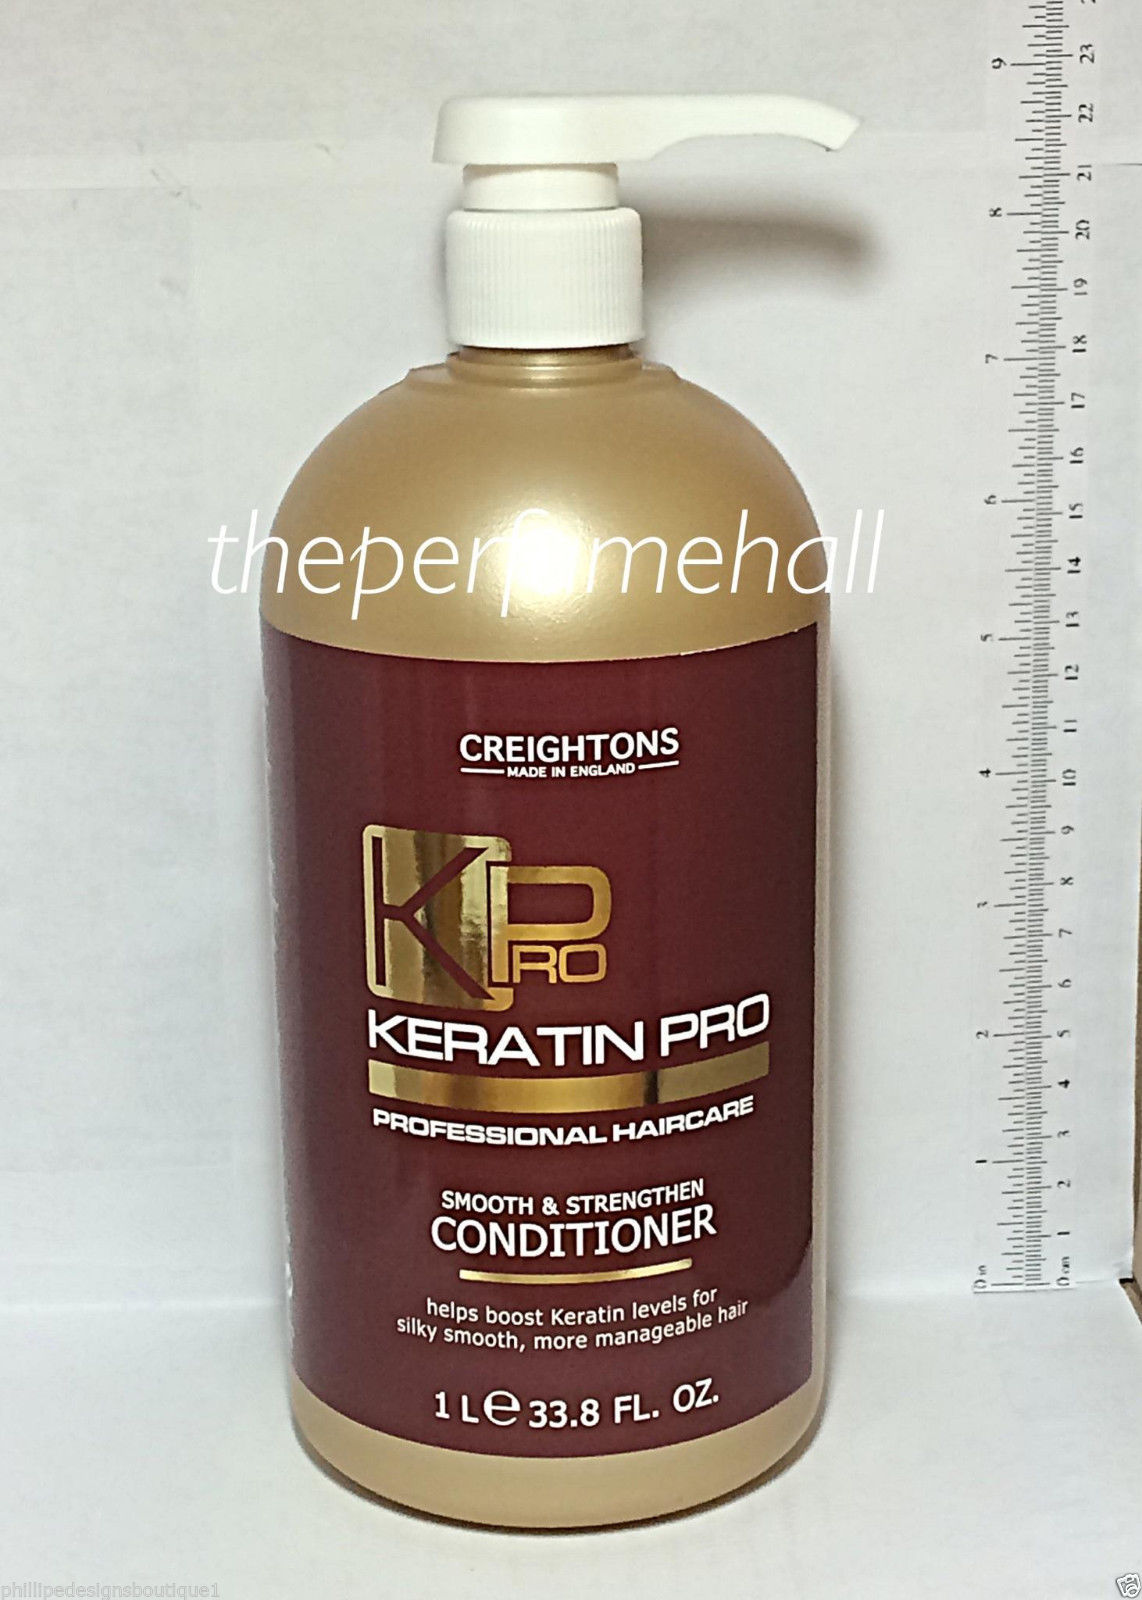 Creightons Keratin Pro Conditioner Boost Keratin Levels All Hair Types 33.8oz